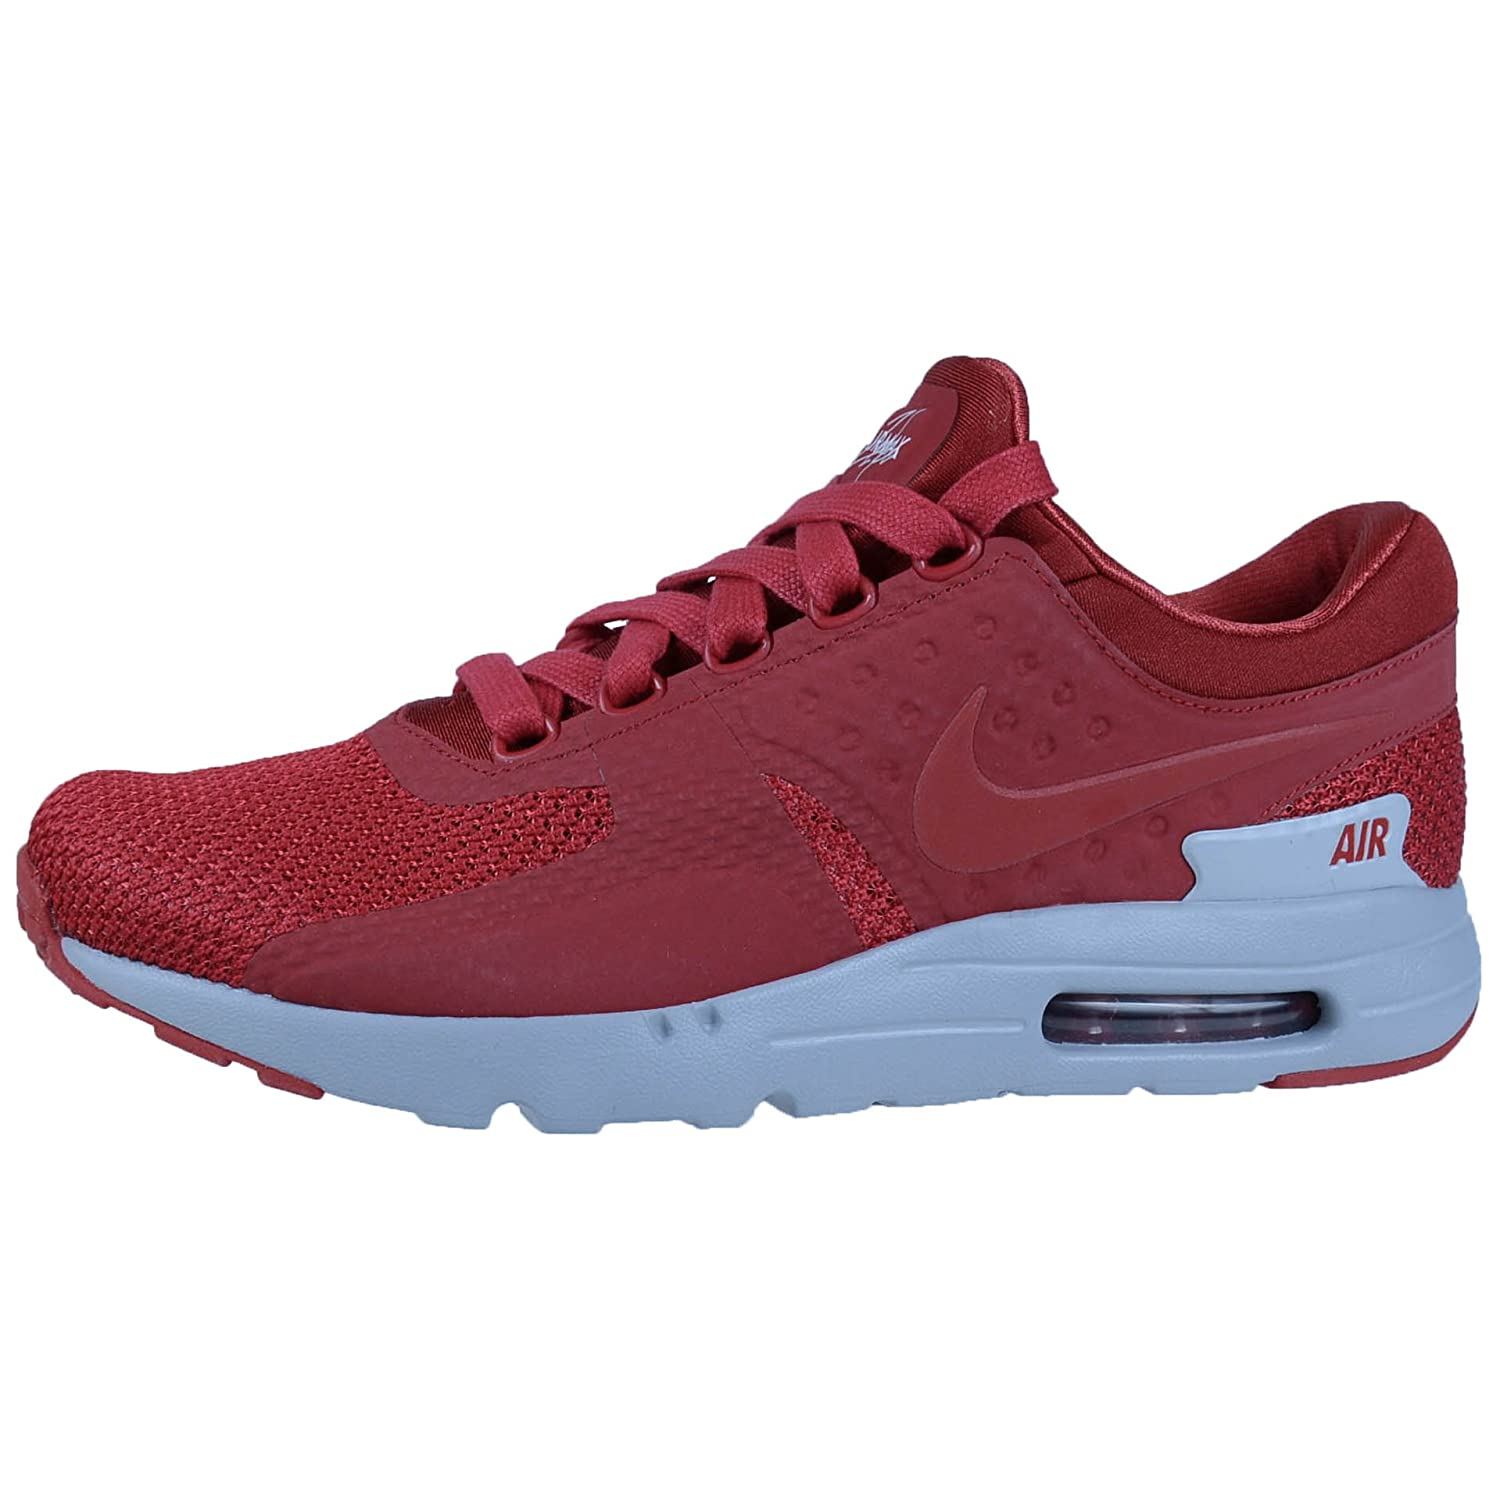 NIKE Air Max Shoes Zero Essential Mens Running Shoes Max B00CPGXB30 12 D(M) US|Gym Red/Gym Red/Wolf Grey e3e2cb